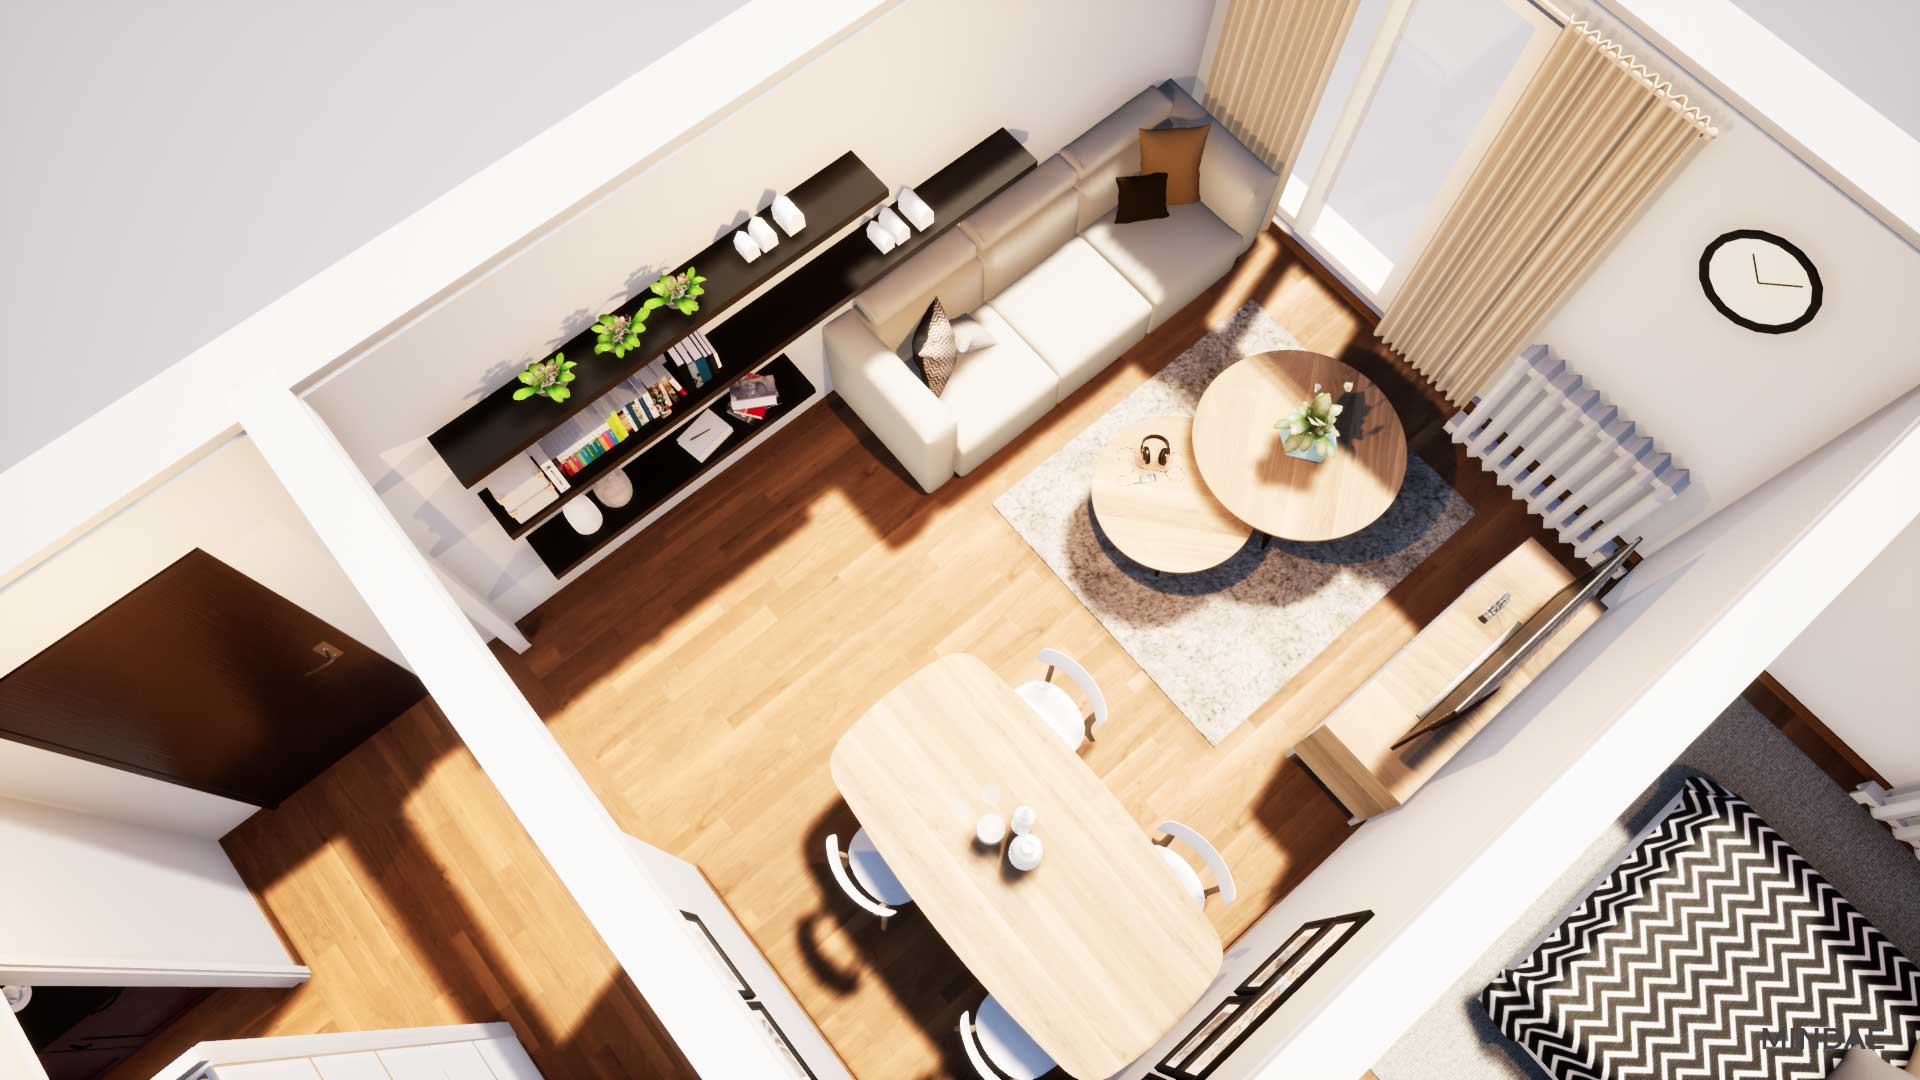 Mindae_3D_appartement_caen_immobilier_homestaging